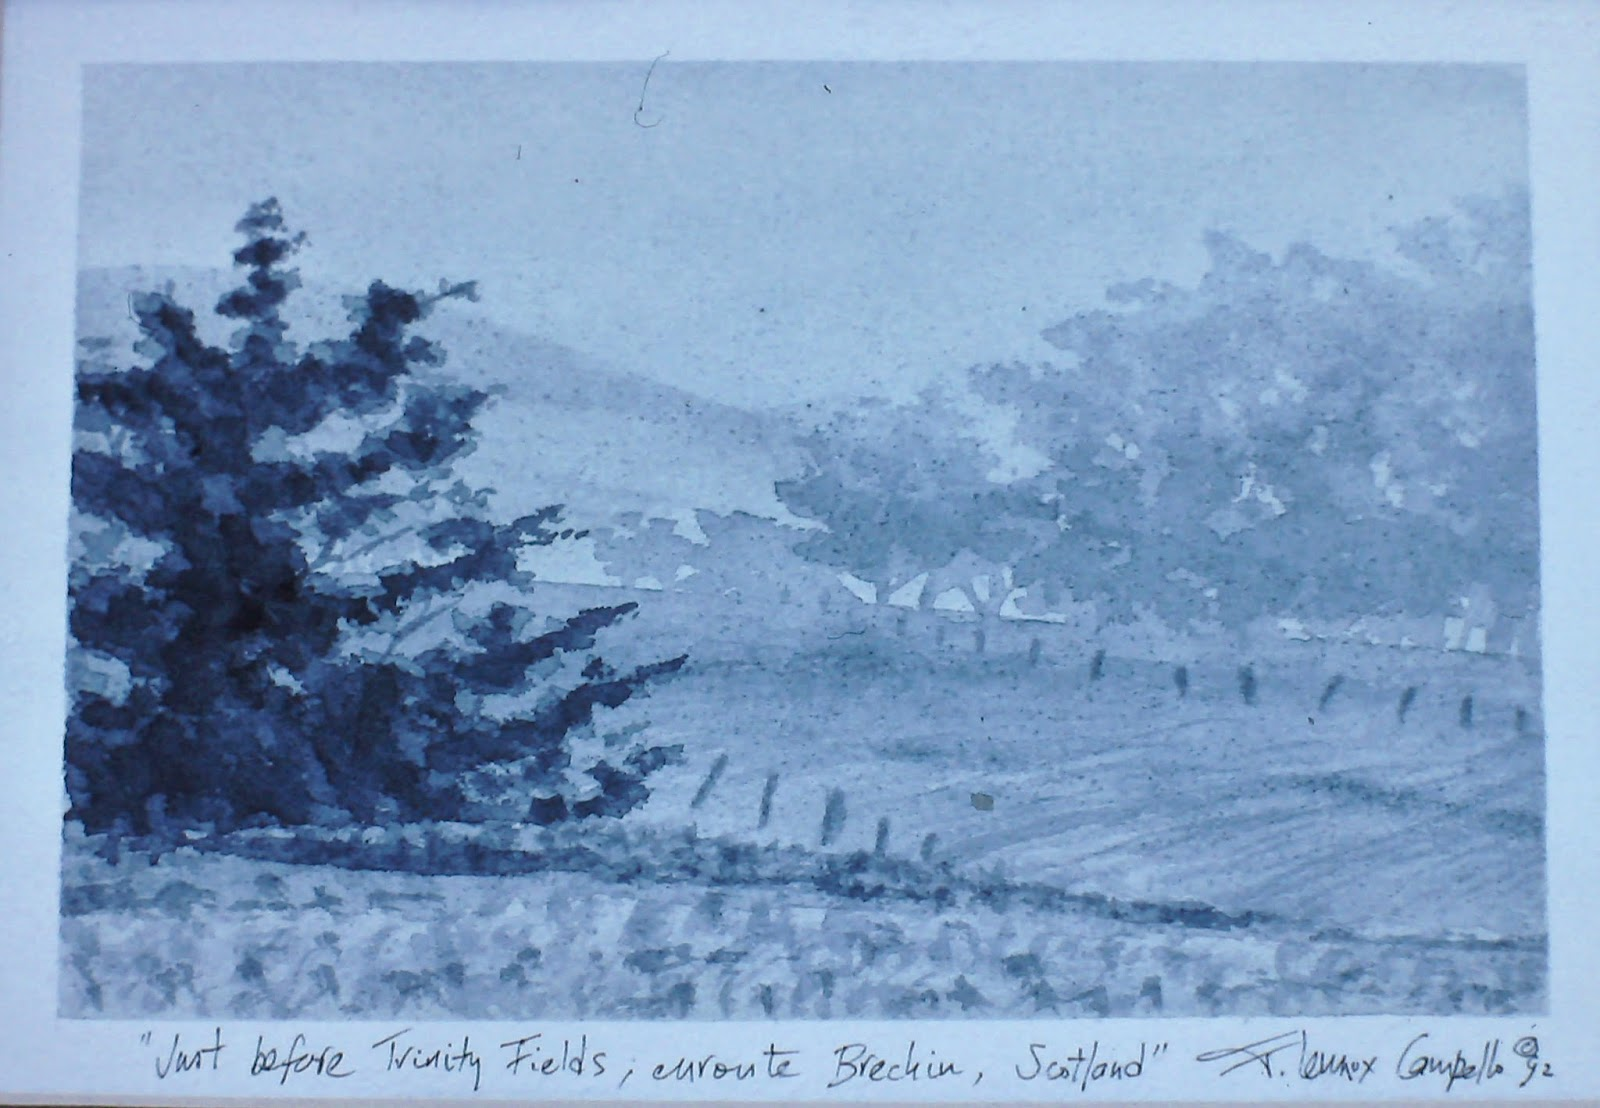 Just Before Trinity Fields, Enroute Brechin, Angus, Scotland  6x10 inches. Watercolor on paper, c. 1992.  In a private collection in Dundee, Scotland